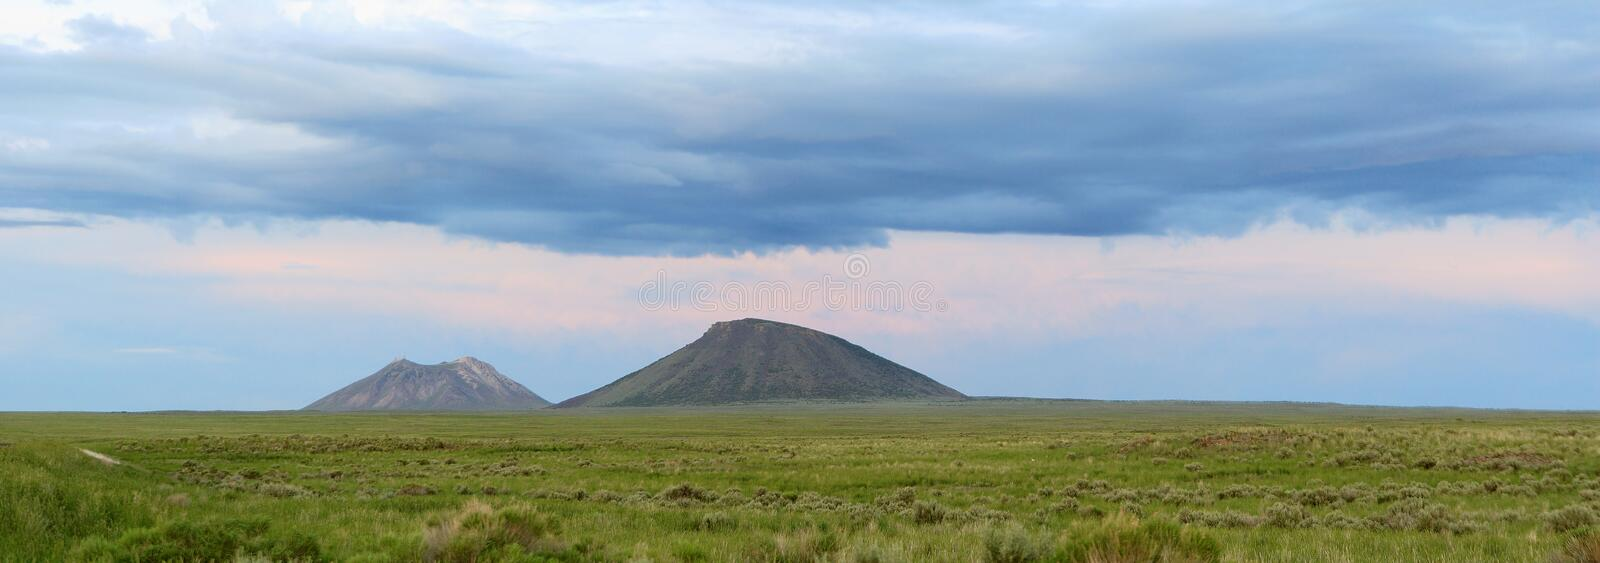 Two dormant shield volcano`s in the desert of south east Idaho. stock images